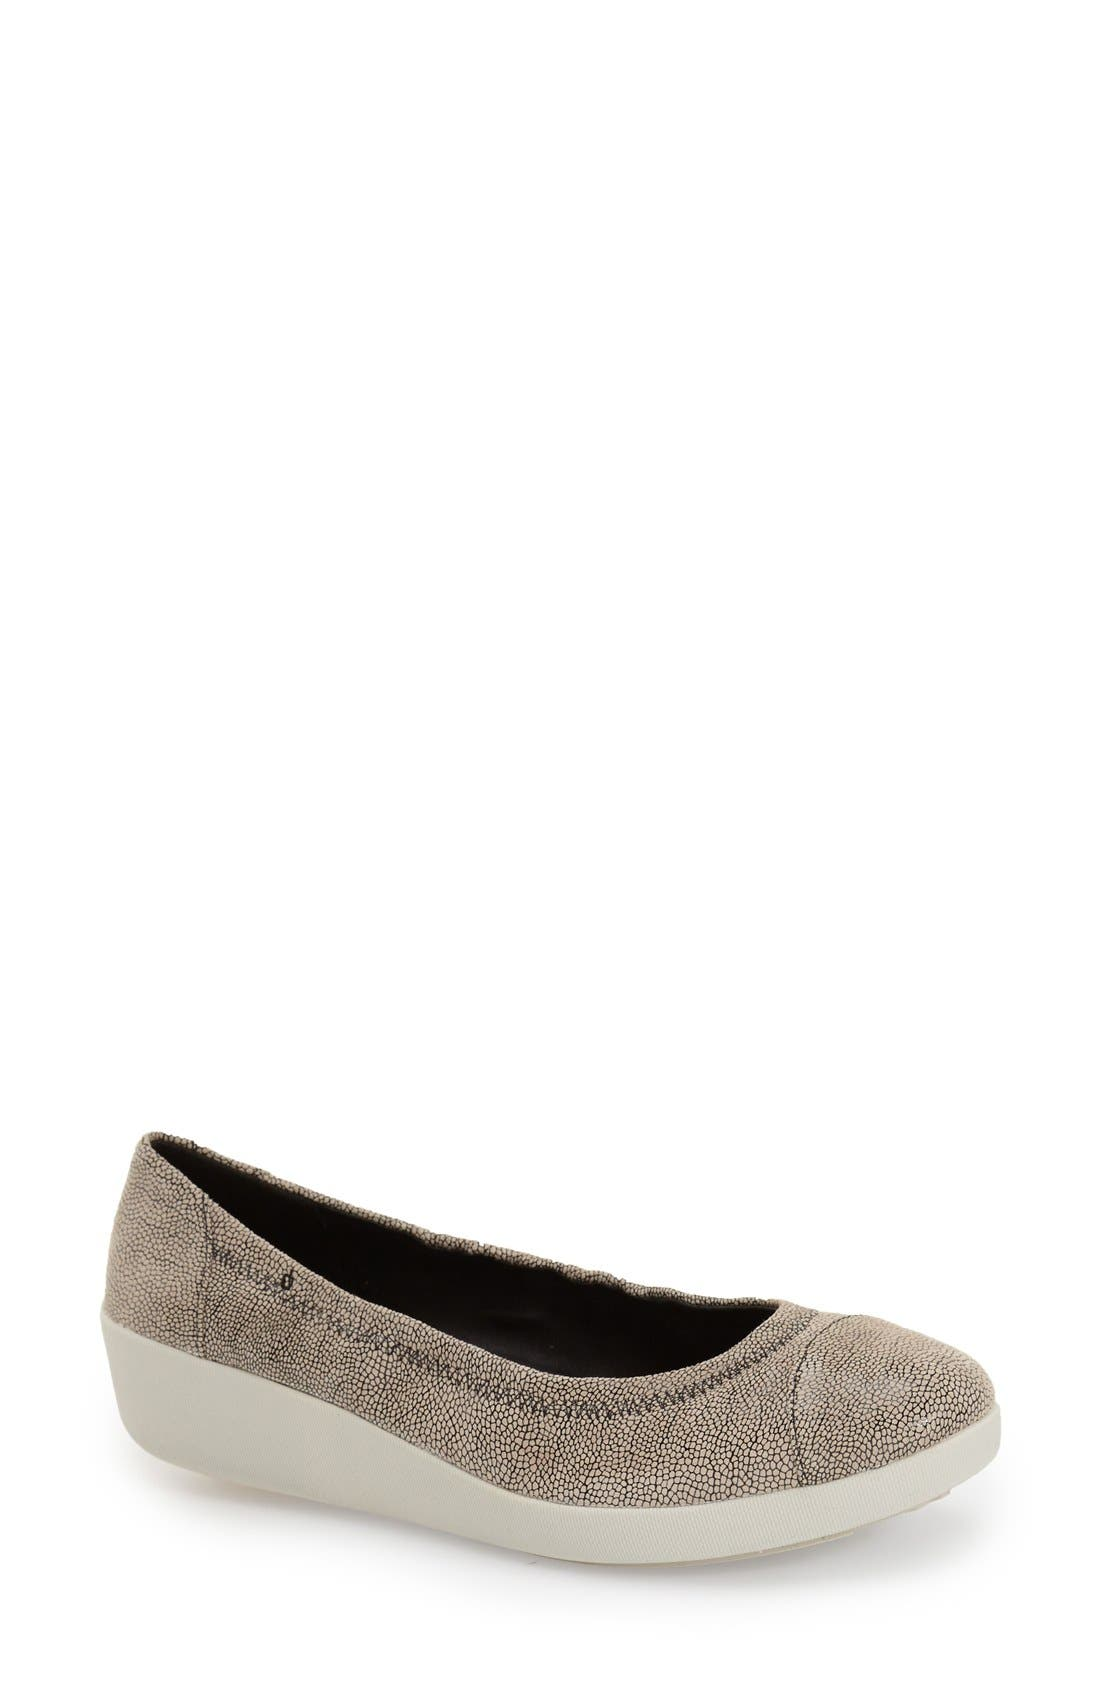 Alternate Image 1 Selected - FitFlop™ 'F-Pop' Leather Ballerina Flat (Women)